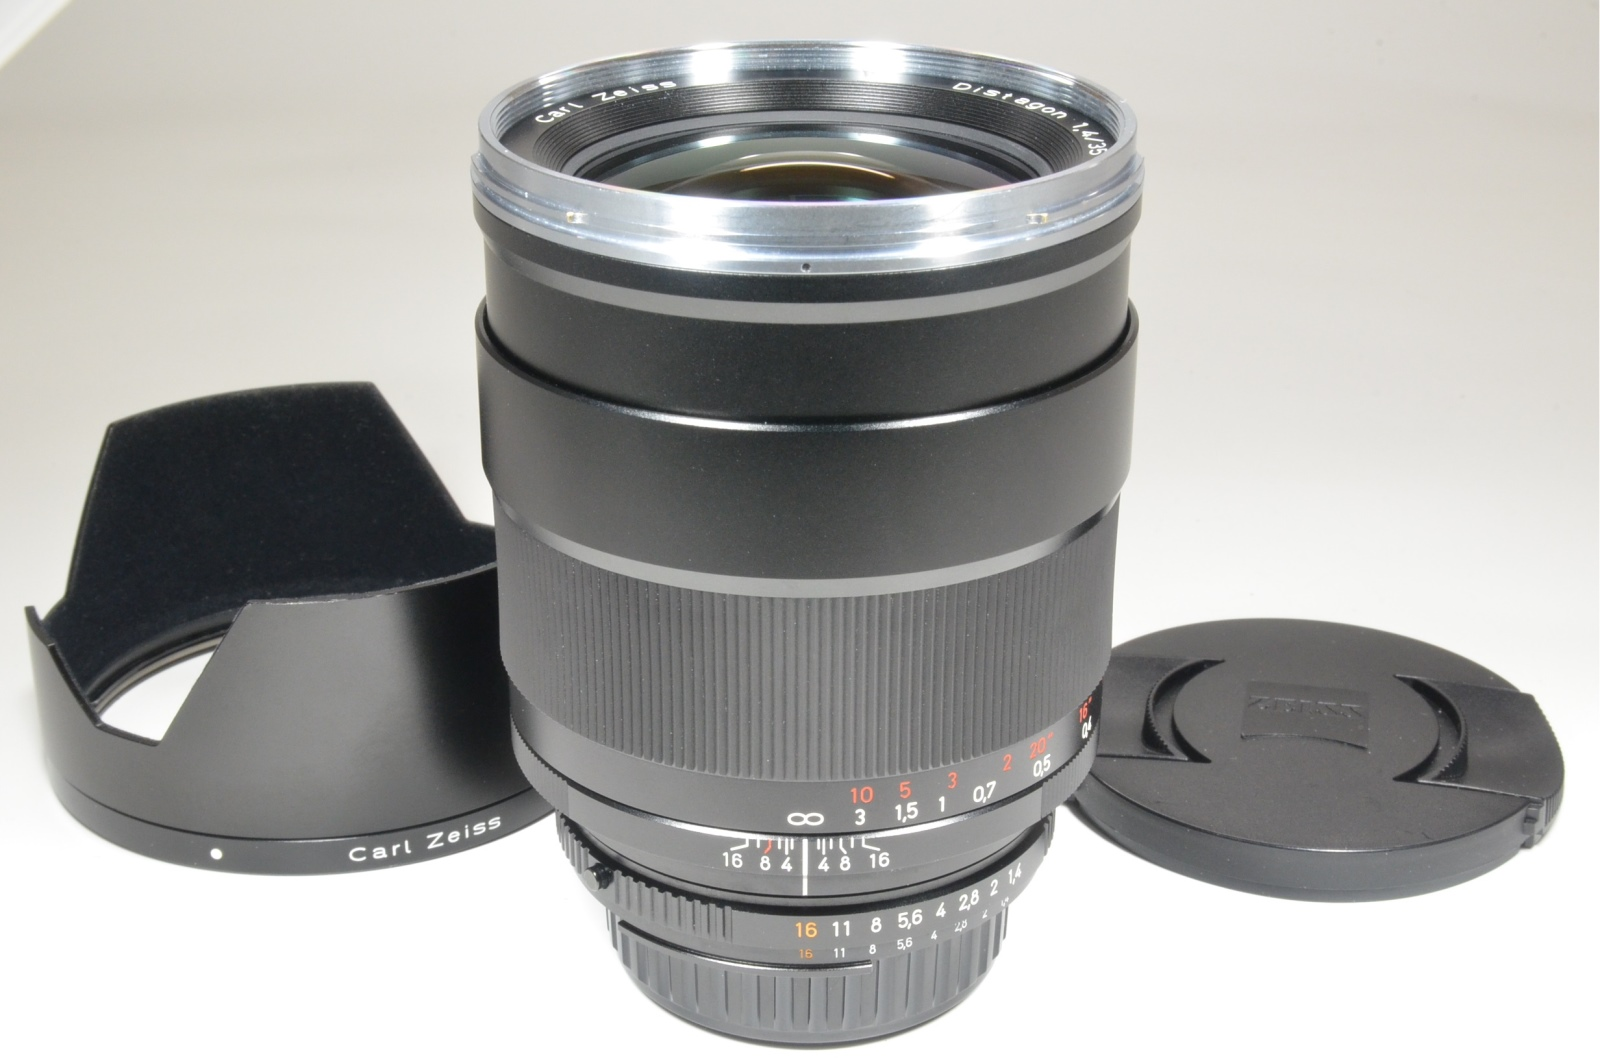 carl zeiss distagon t* 35mm f1.4 zf.2 for nikon lens from japan